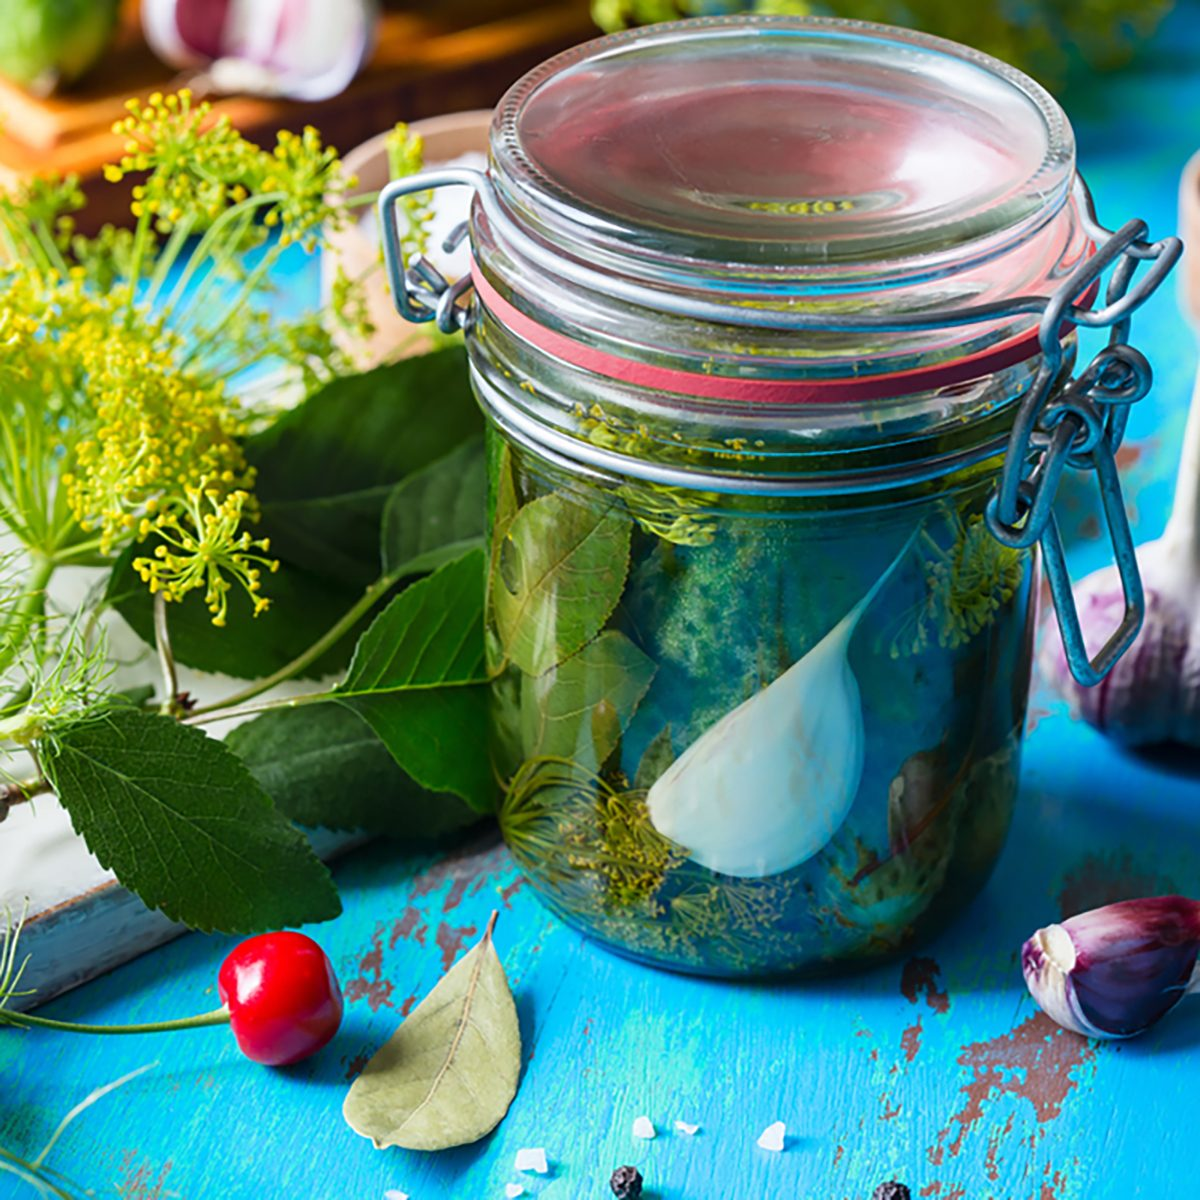 Making pickled cucumbers, homemade pickles in jar on rustic wooden table